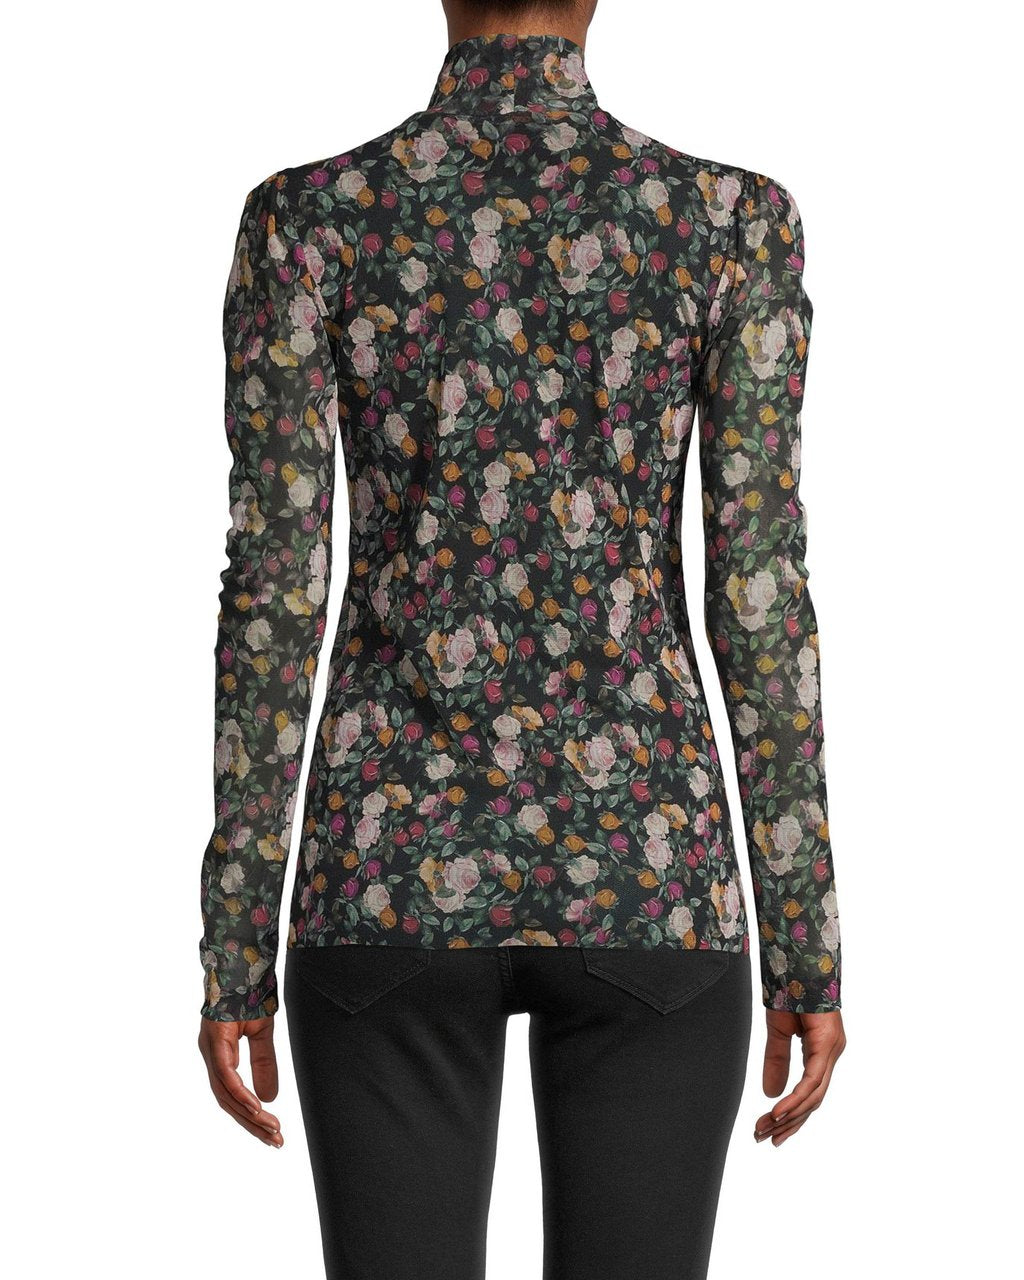 Nicole Miller Printed Mesh Top Rose